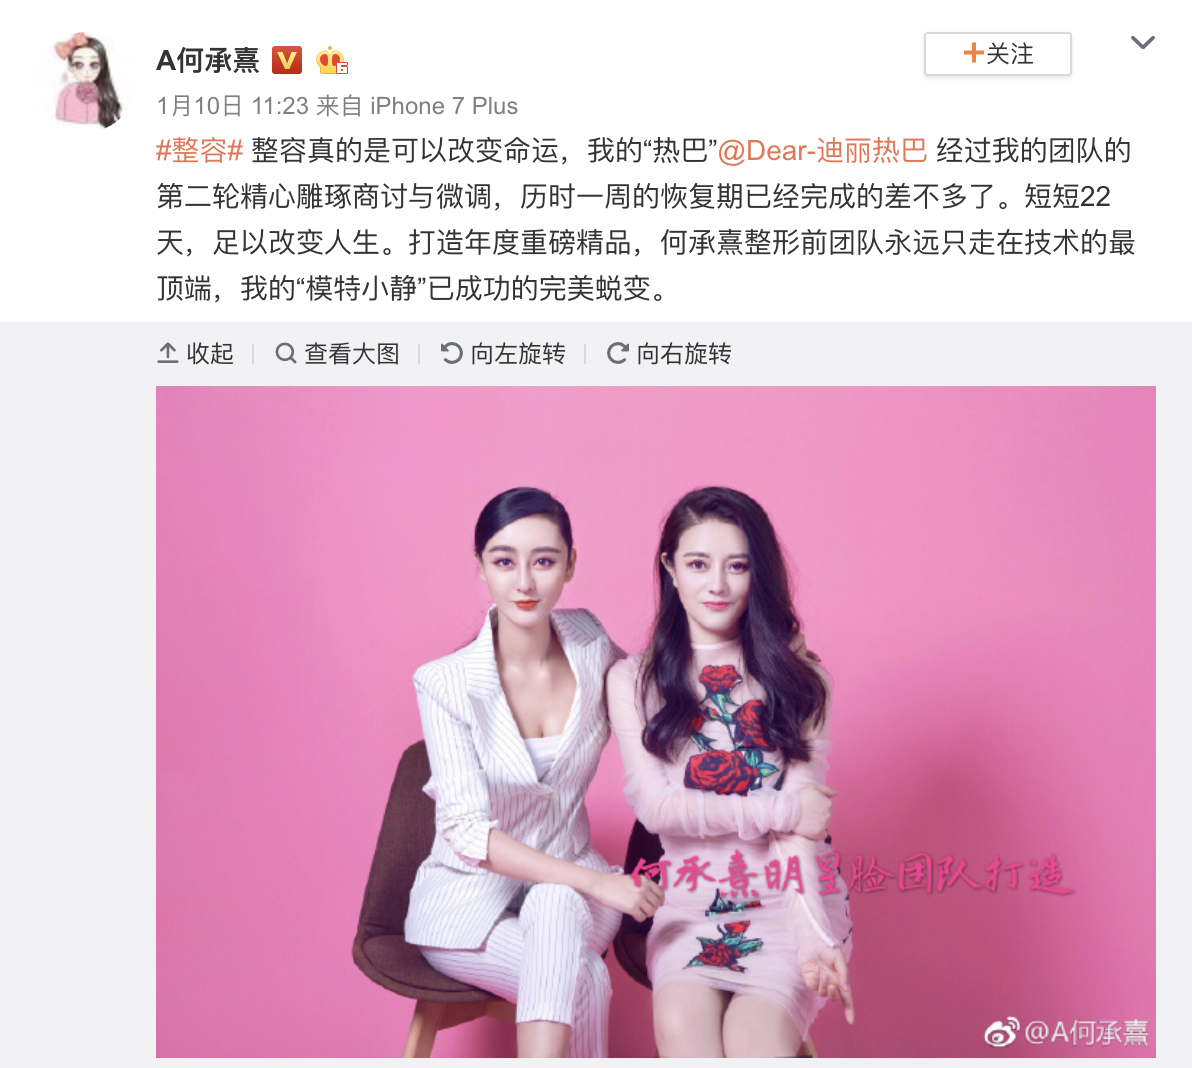 He Chengxi posts a photo of her and a celebrity lookalike of actress Dilraba Dilmurat in an ad for her plastic surgery business.